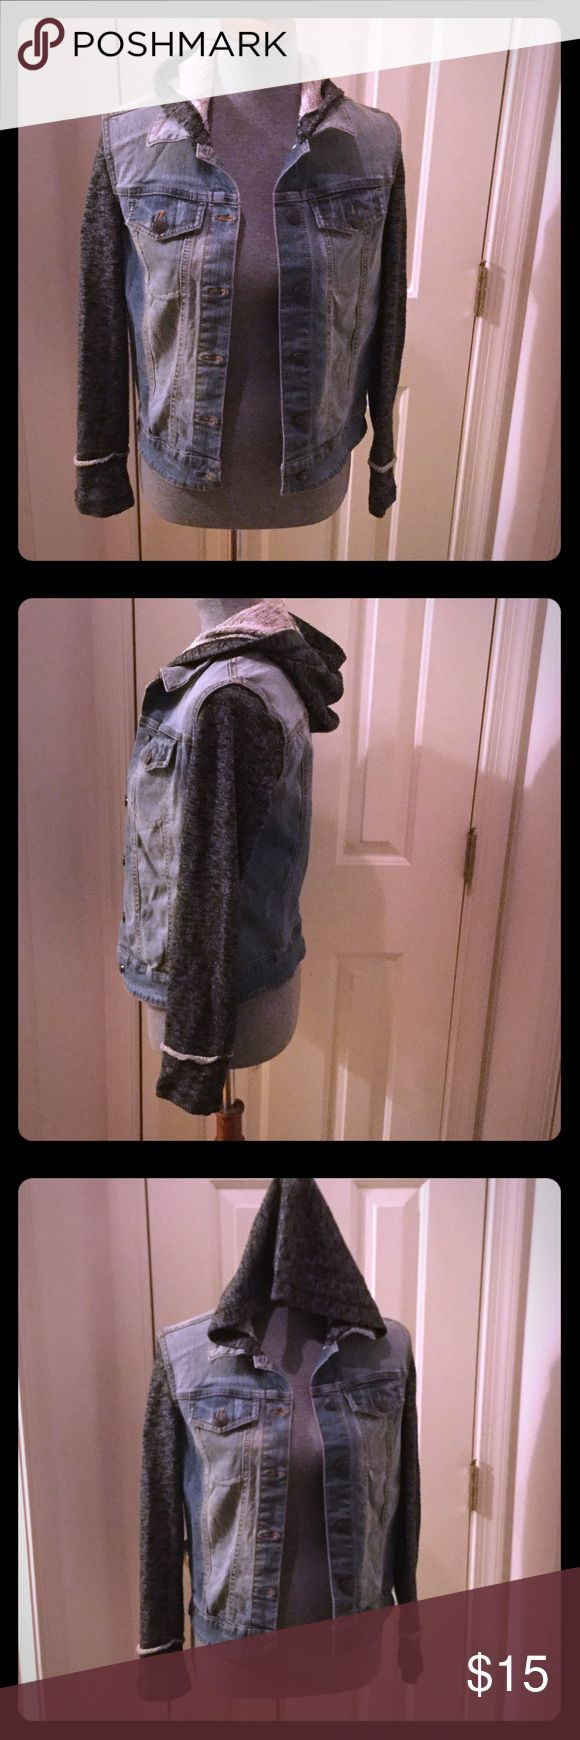 Mossimo Hooded Jean Jacket Jean jacket with gray sleeves and hood. Gently worn. Mossimo Supply Co Jackets & Coats Jean Jackets